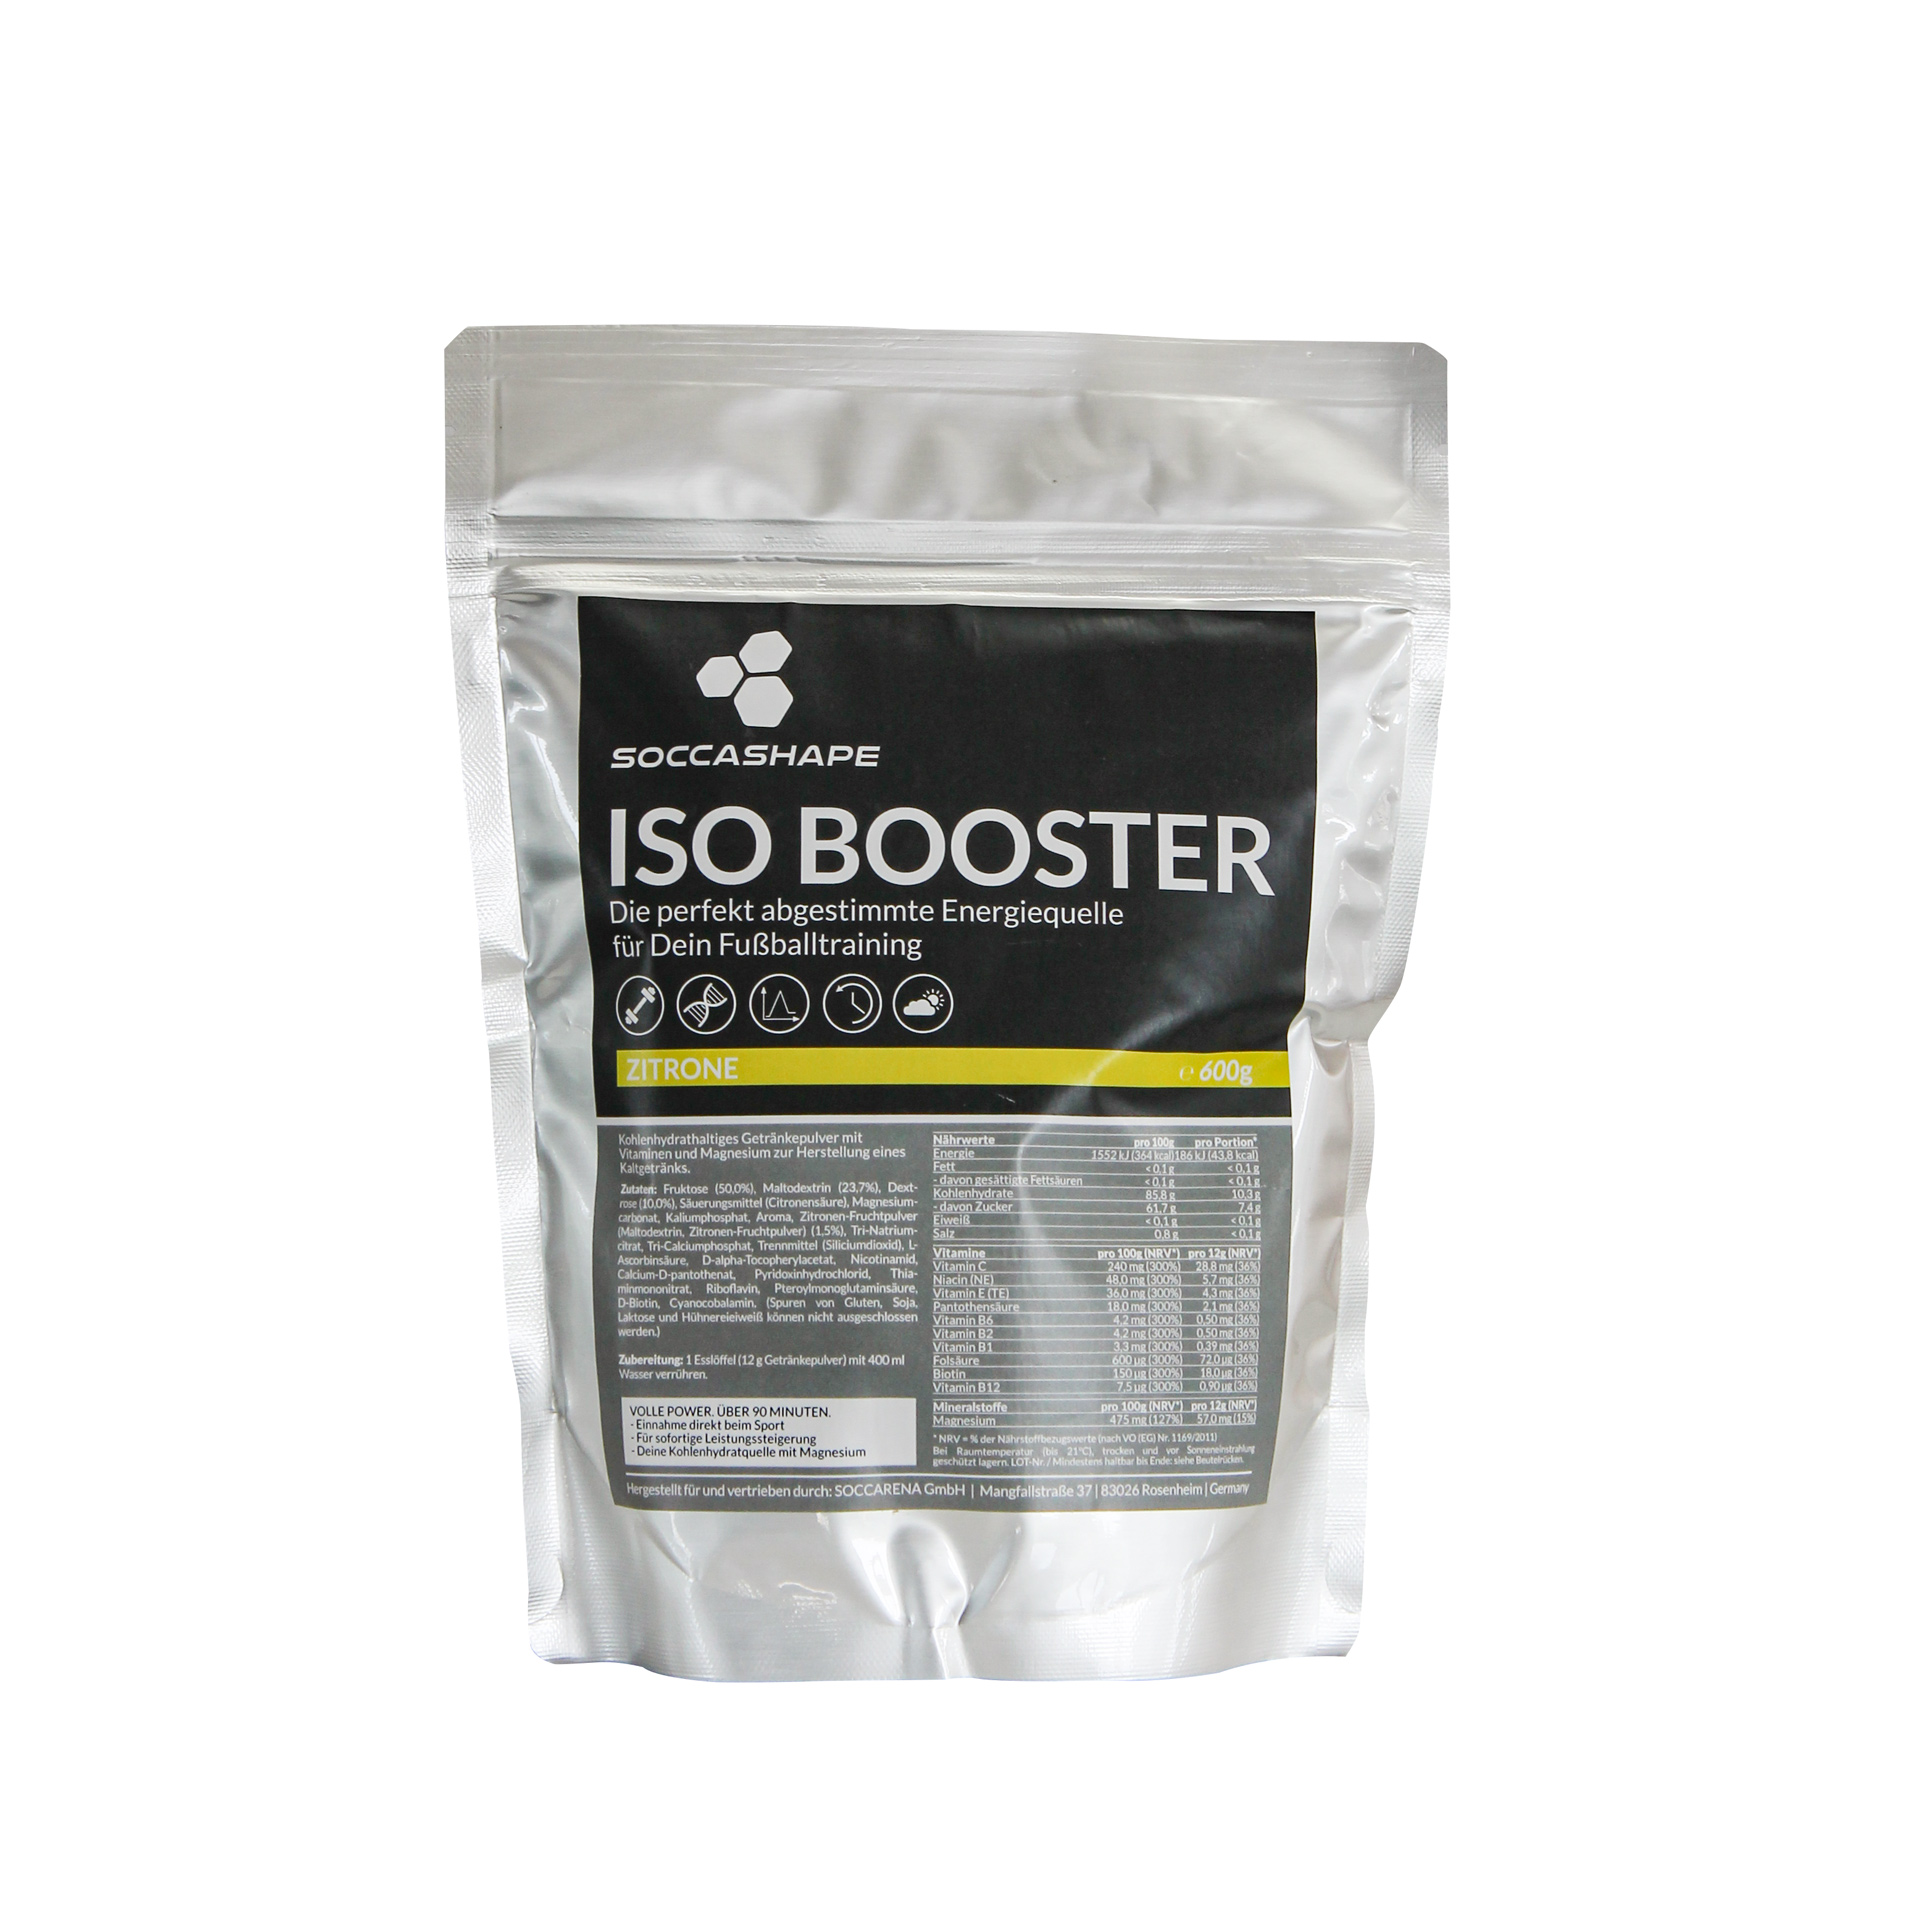 ISO BOOSTER